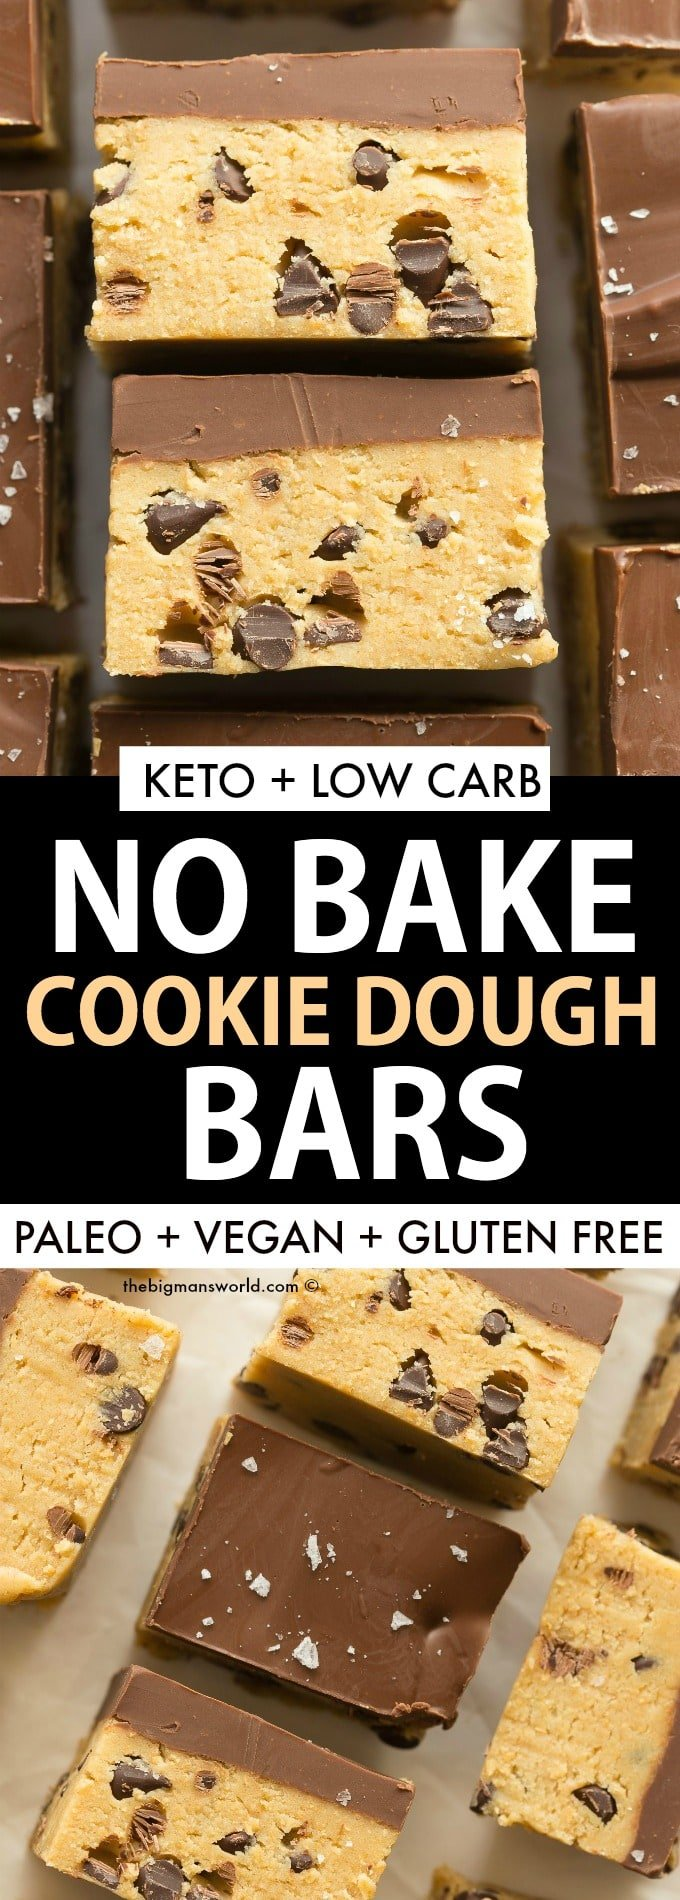 Keto No Bake Cookie Dough Bars with sugar free chocolate chips